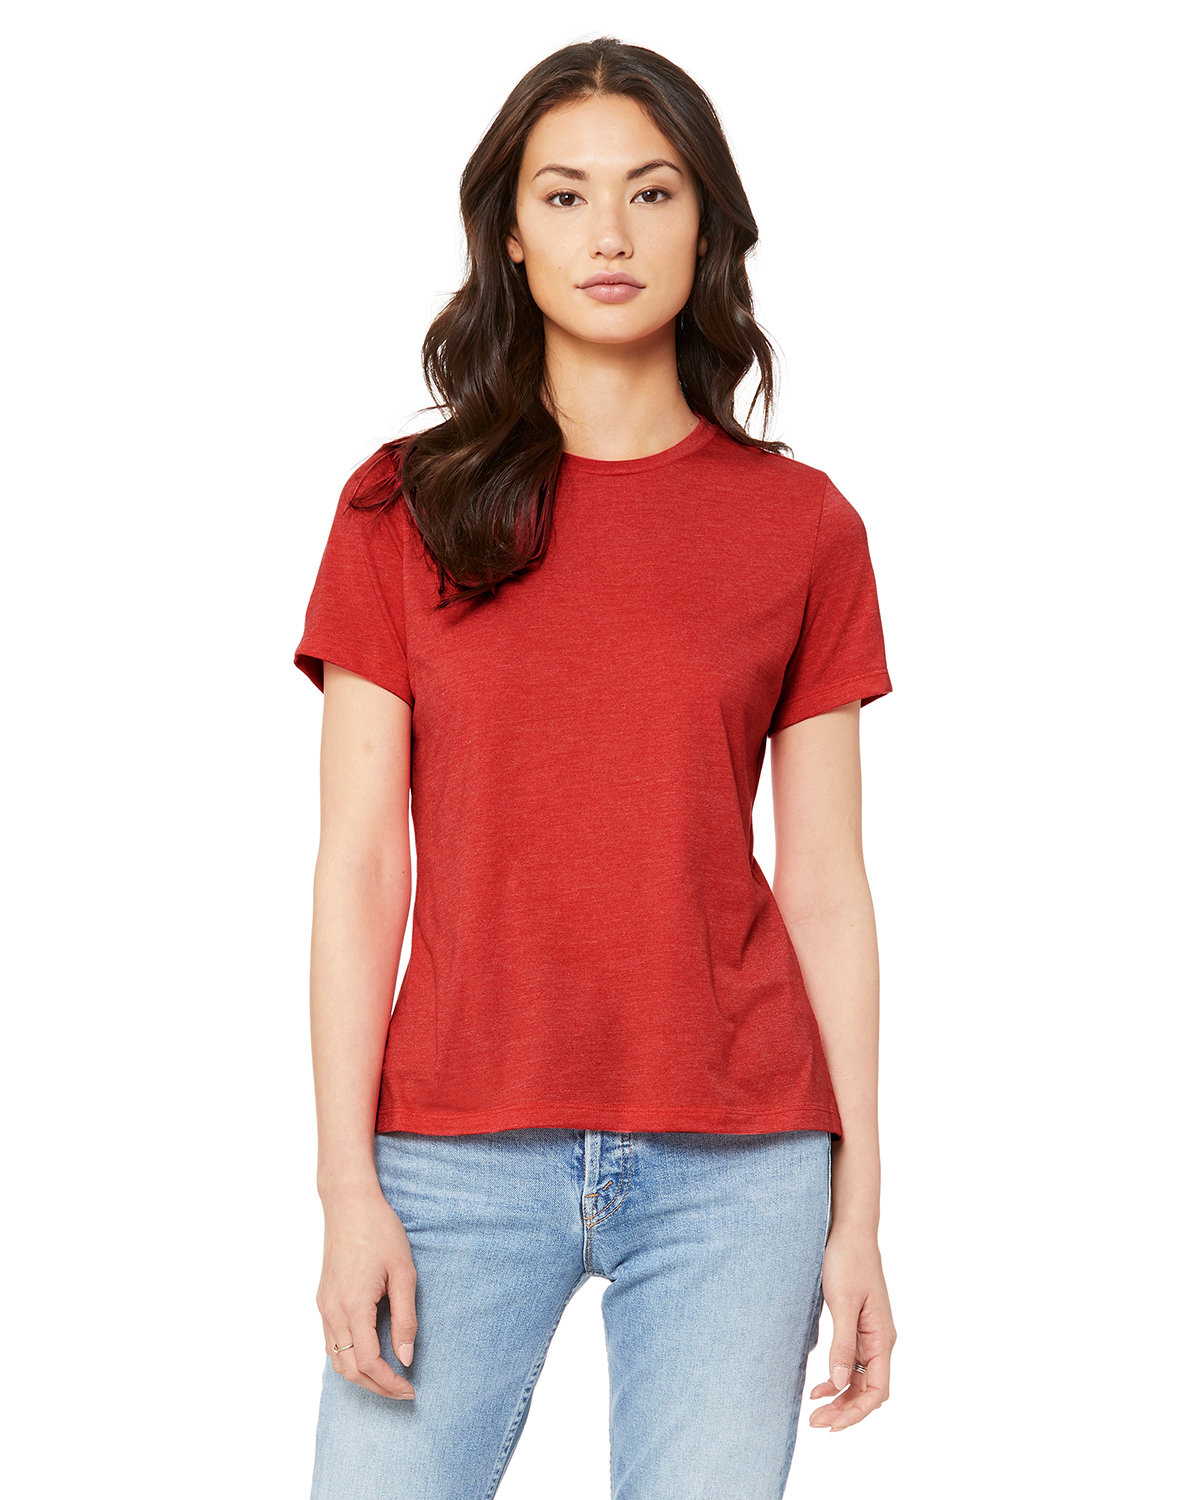 Bella + Canvas Ladies' Relaxed Heather CVC Short-Sleeve T-Shirt HEATHER RED